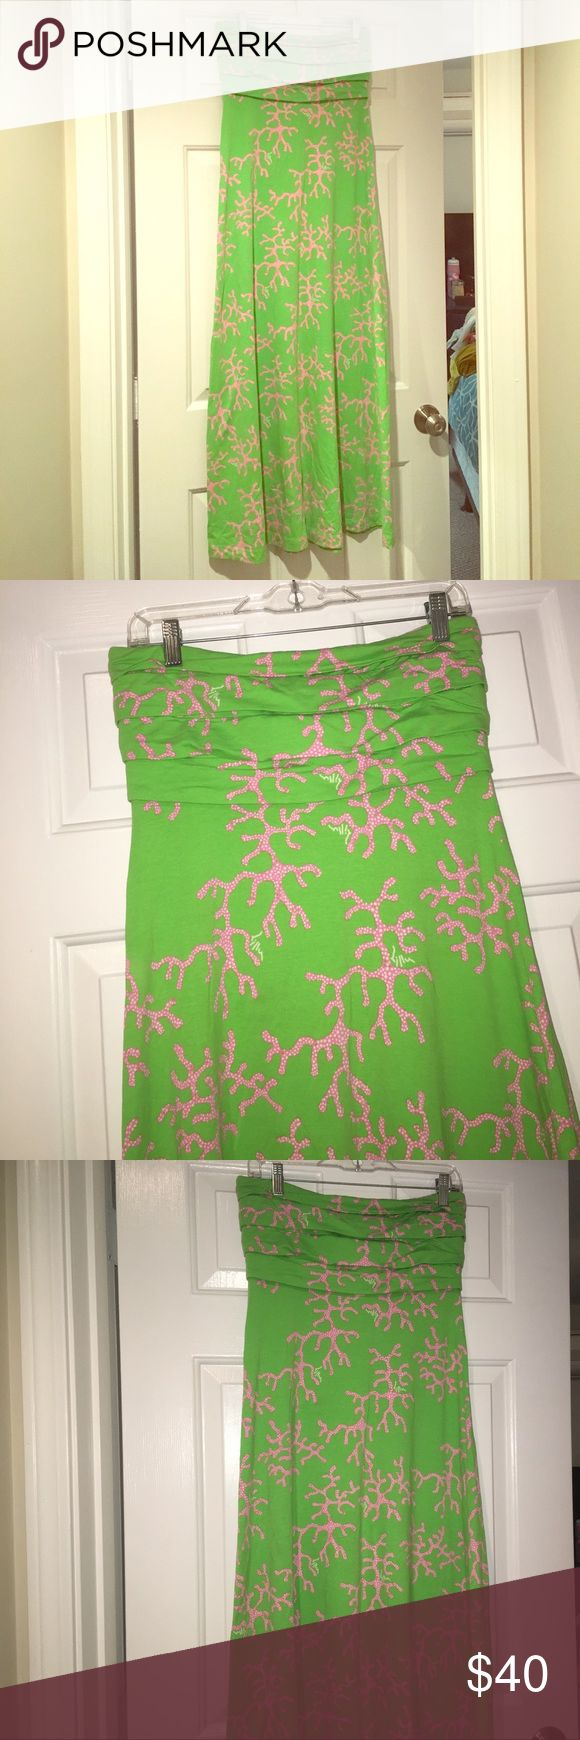 Lilly Pulitzer Coral Maxi Dress Bright pink coral and lime green maxi dress. So perfect for summer parties and spring time fun! Lilly Pulitzer Dresses Maxi